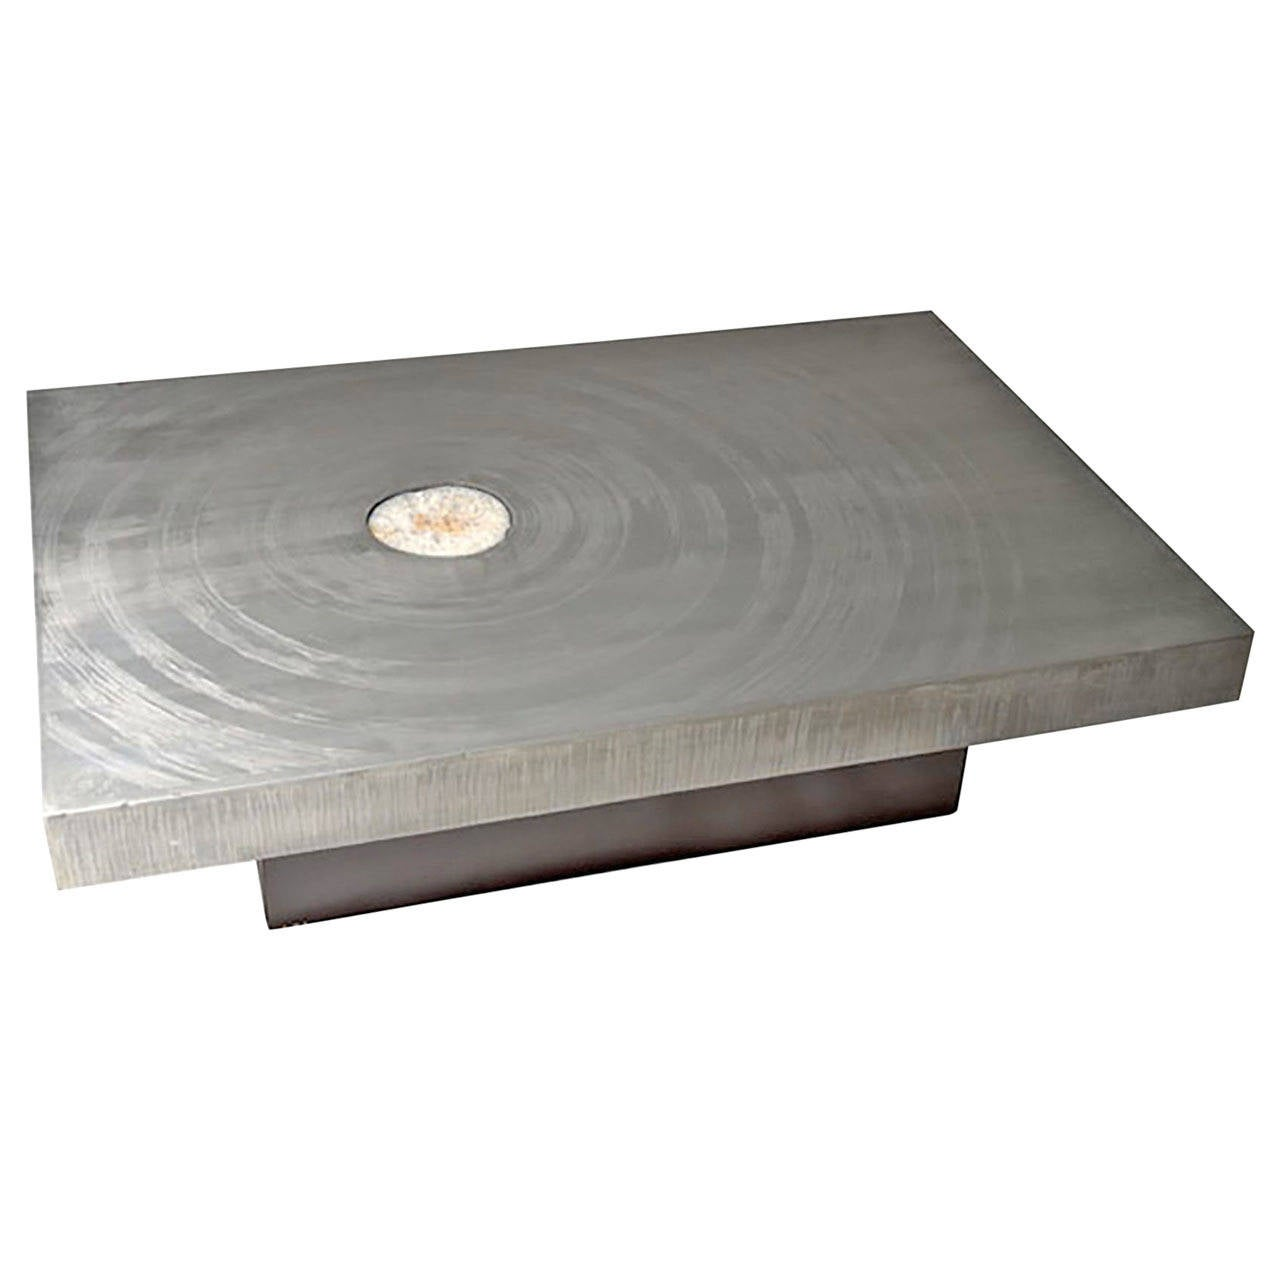 1970s Belgian Etched Aluminum And Agate Coffee Table By Marc D Haenens 1